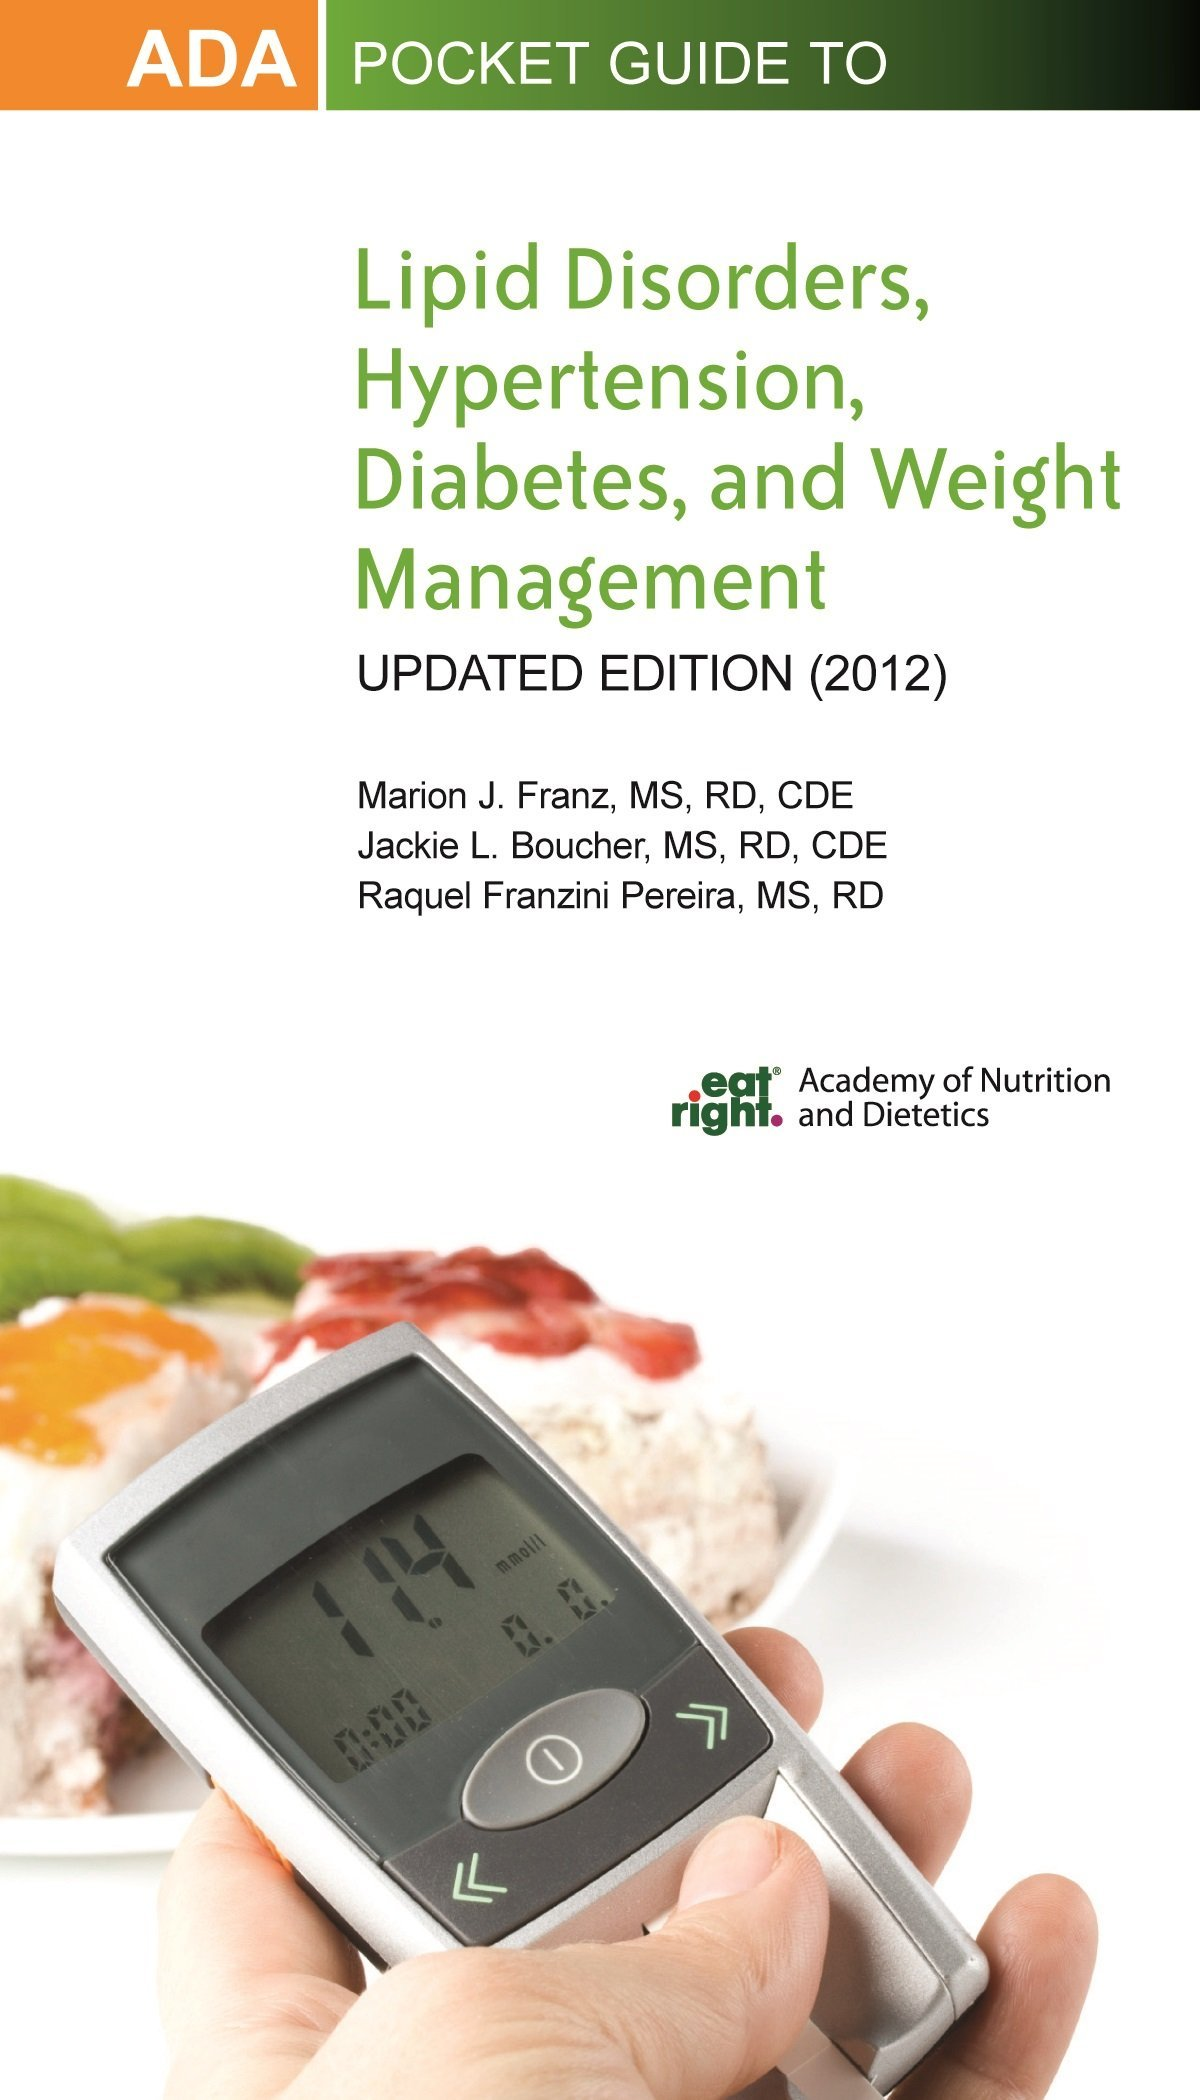 ADA Pocket Guide to Lipid Disorders, Hypertension, Diabetes, and Weight Management